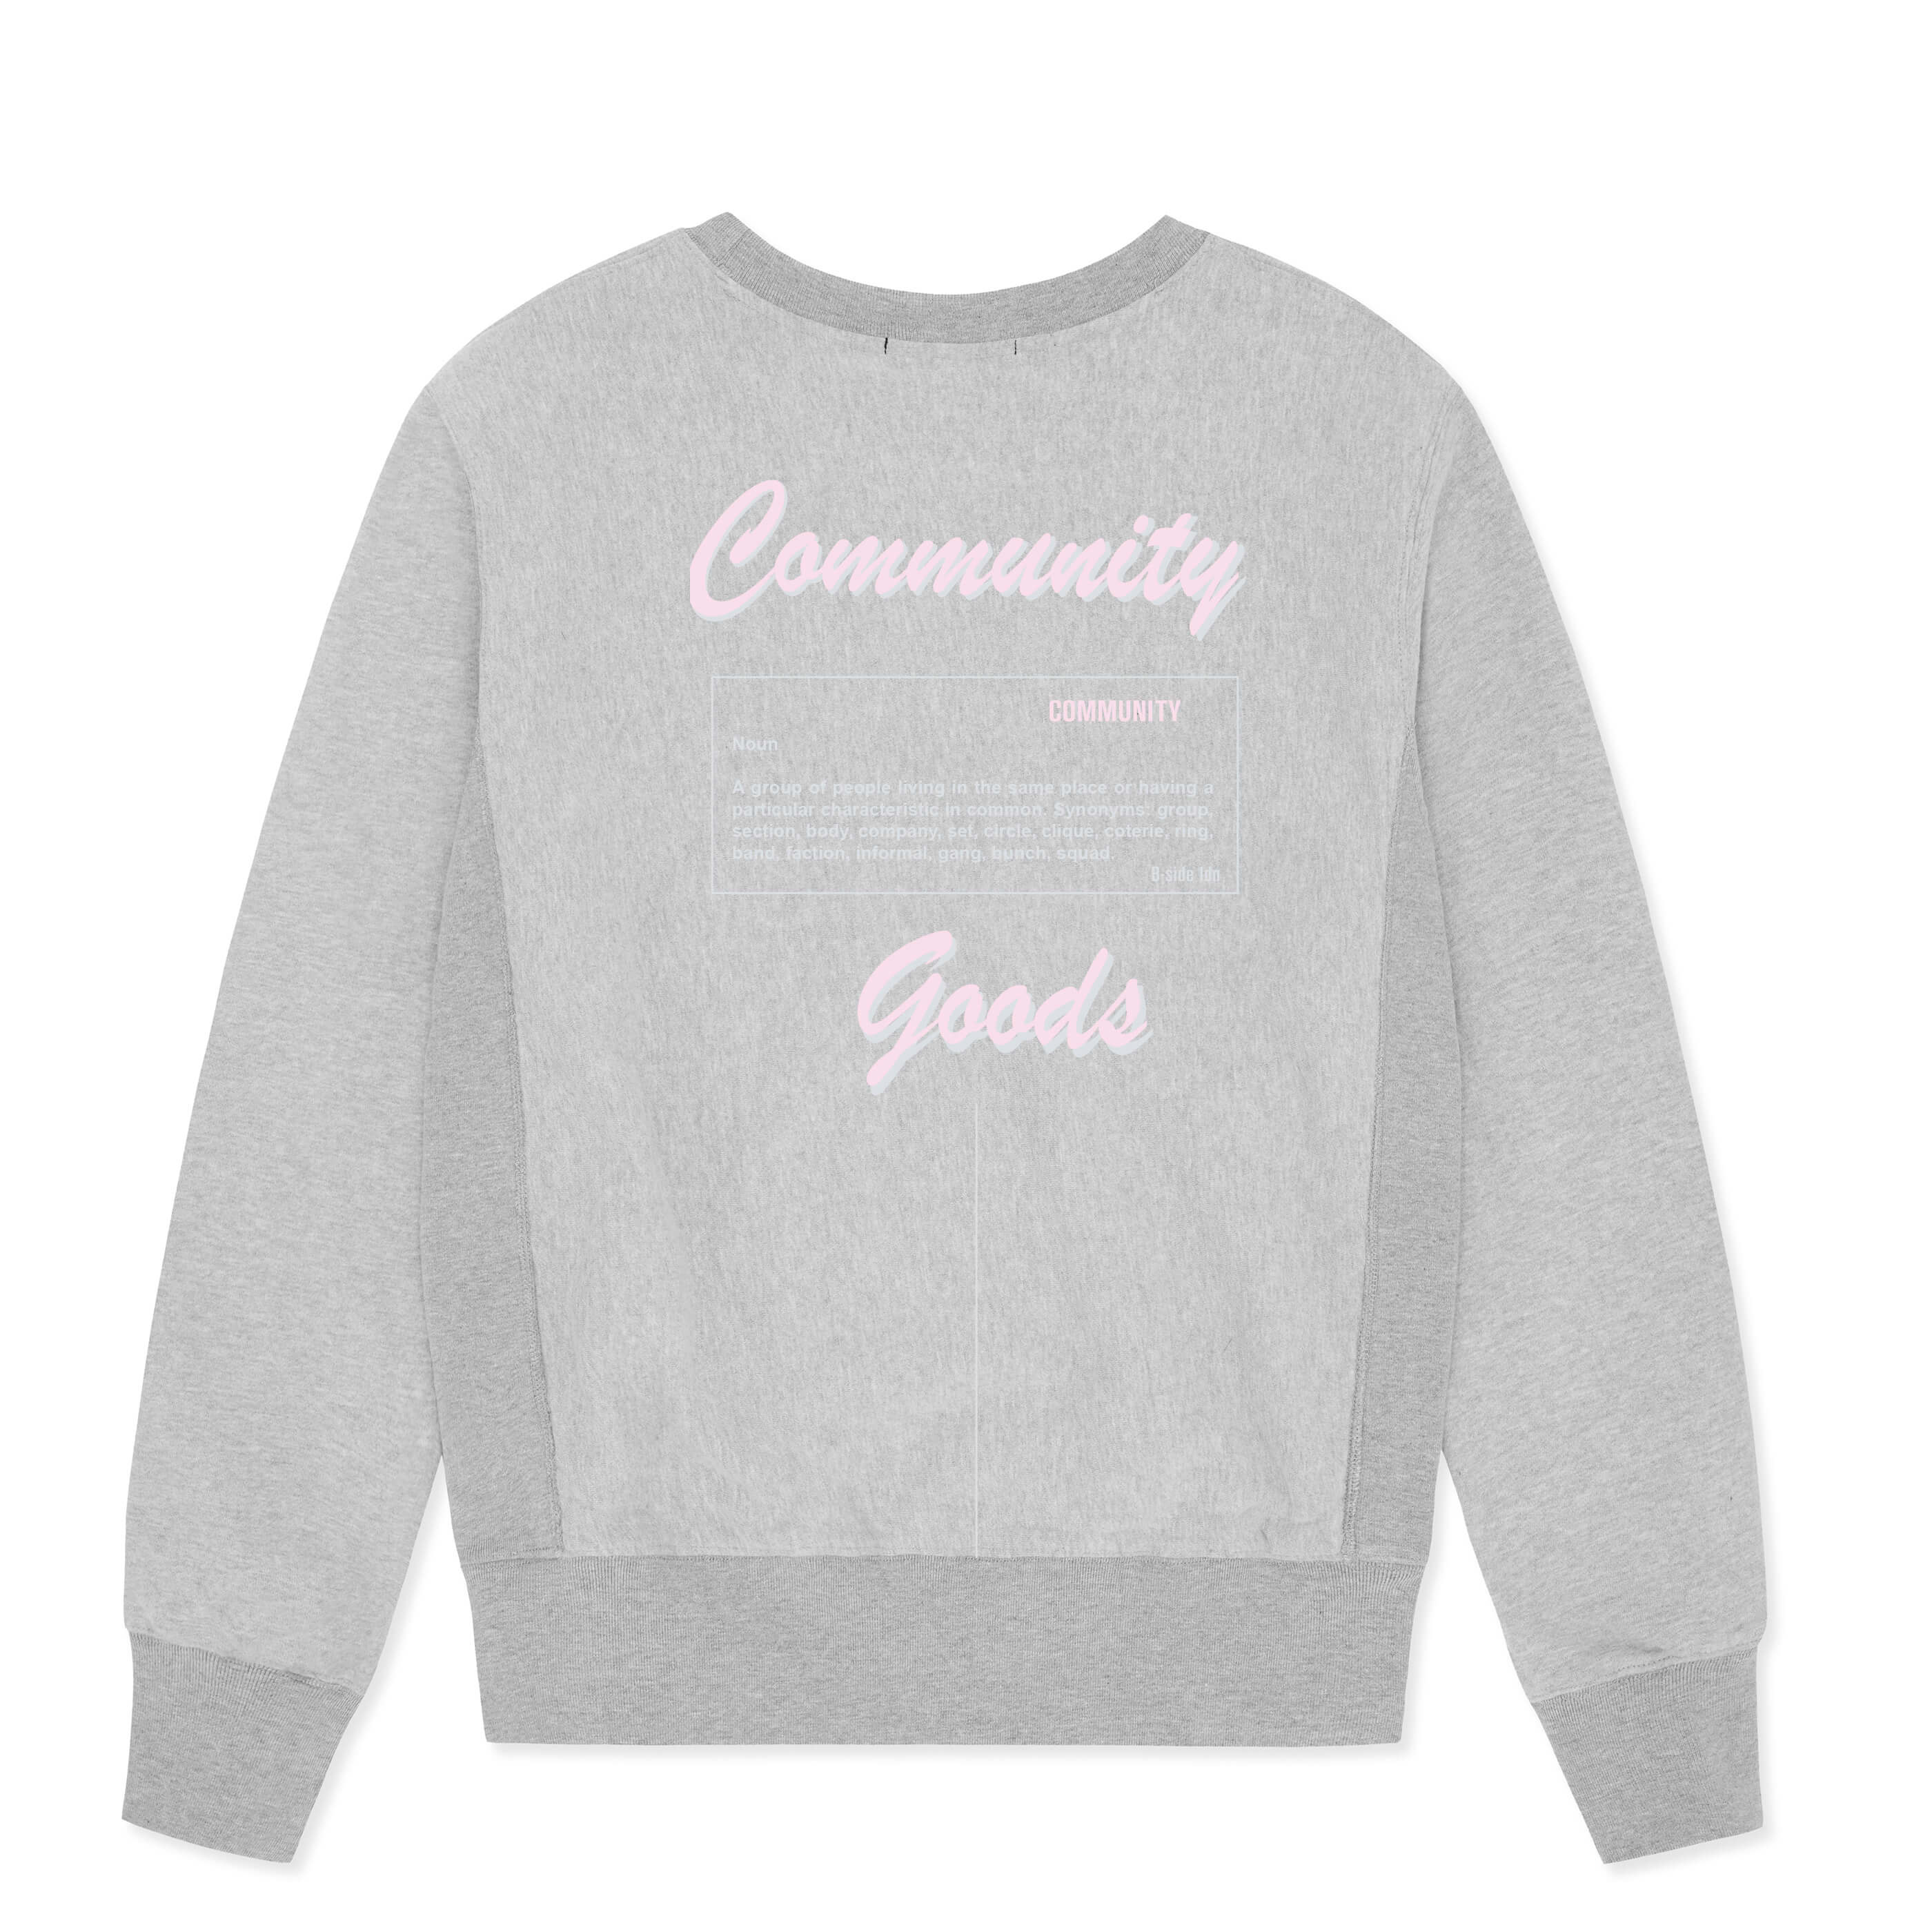 WOMEN'S GREY CREWNECK COMMUNITY HEAVY SWEAT | PINK LOGO | B-sidebywale